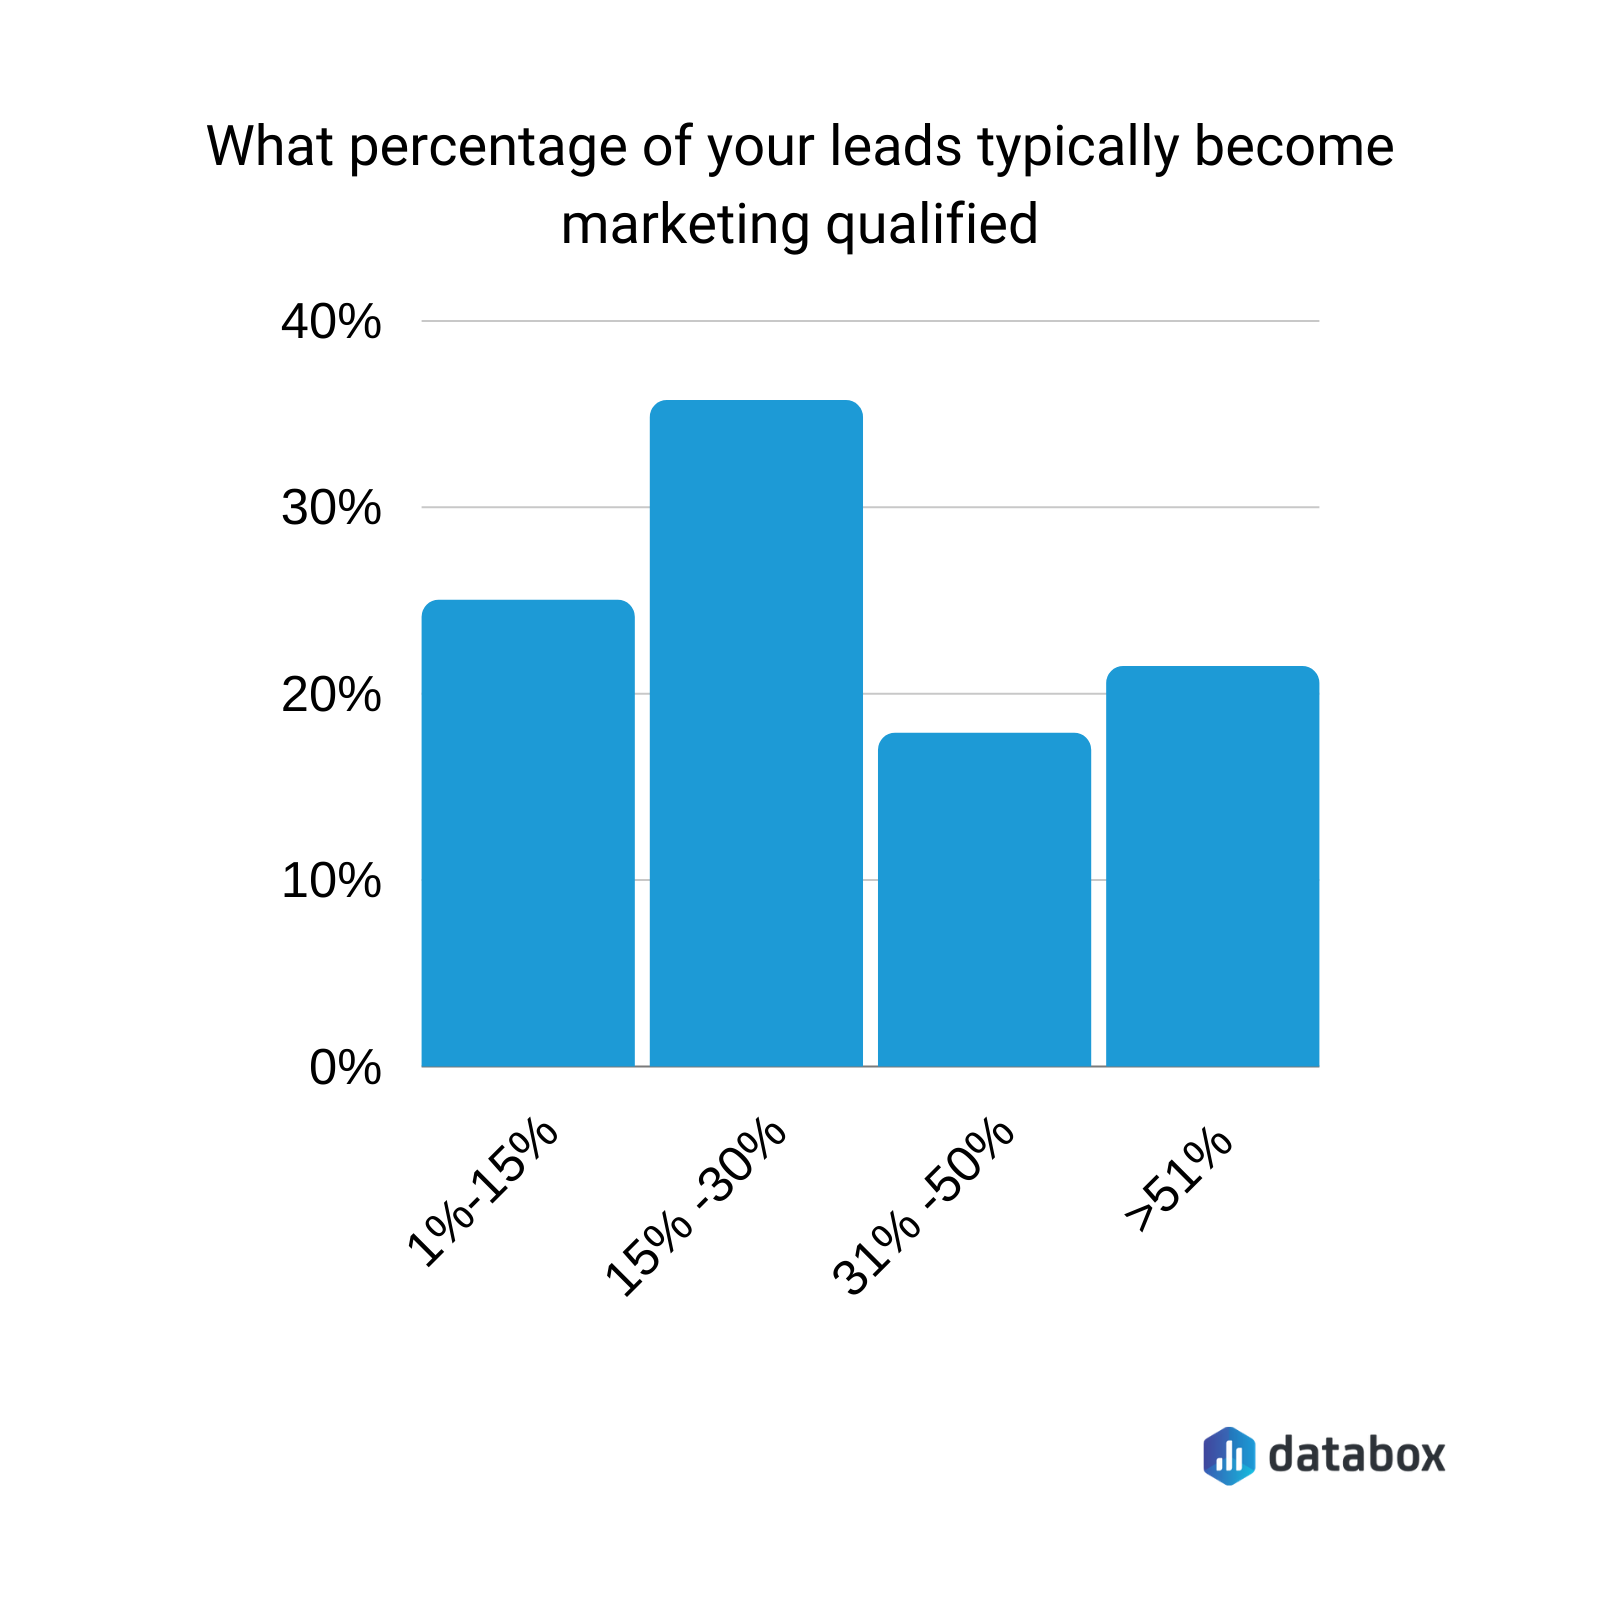 What percentage of your leads typically become marketing qualified?